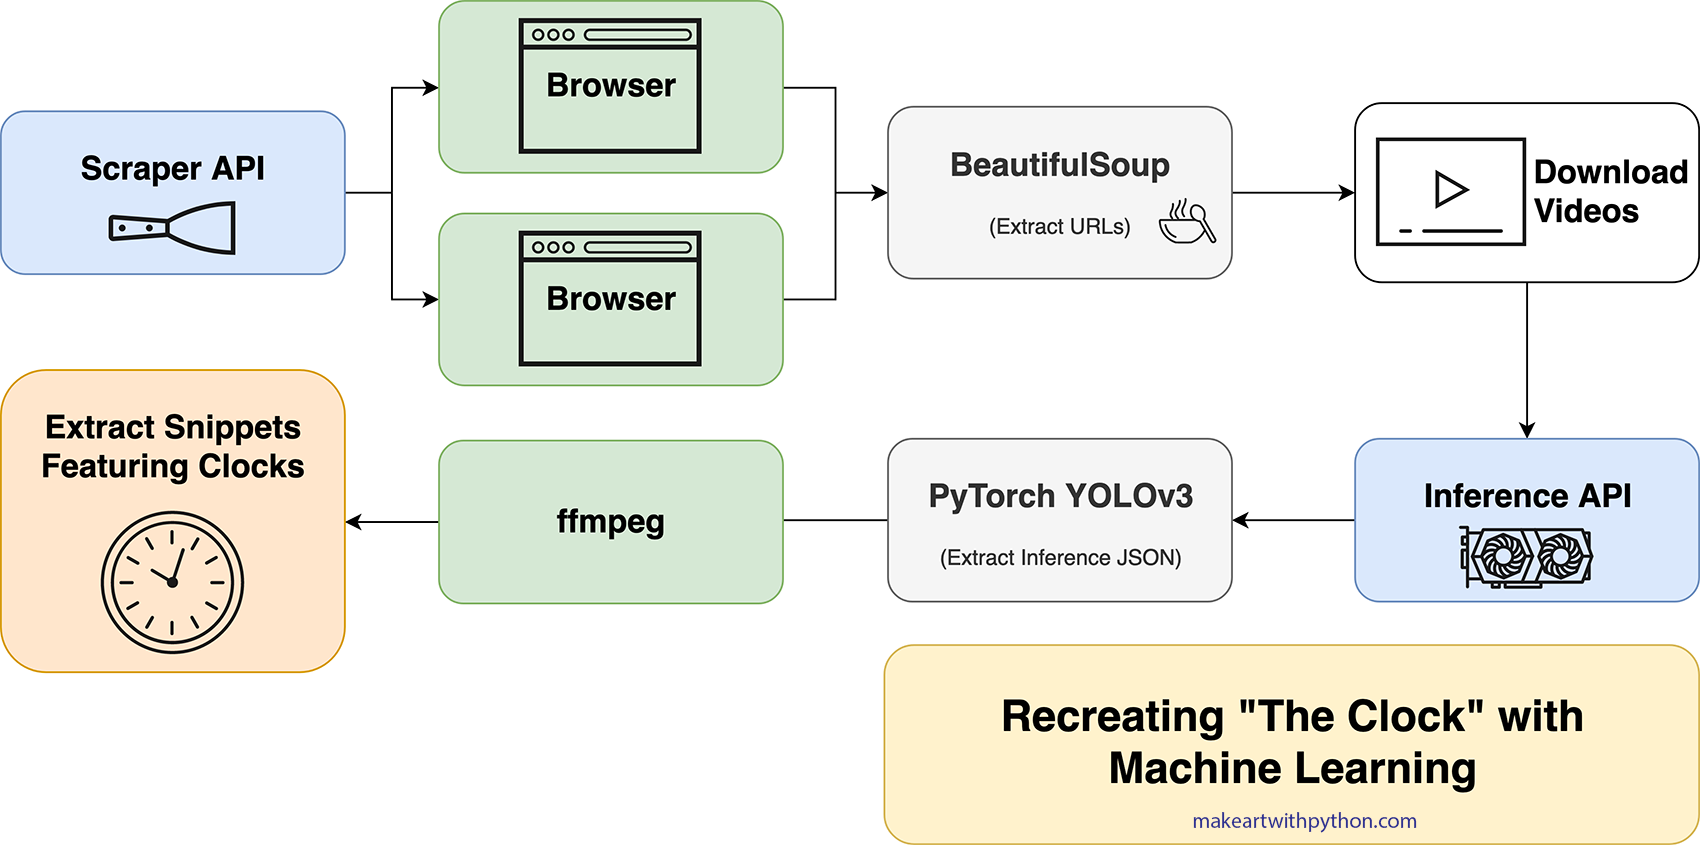 """Recreating """"The Clock"""" with Machine Learning and Web"""